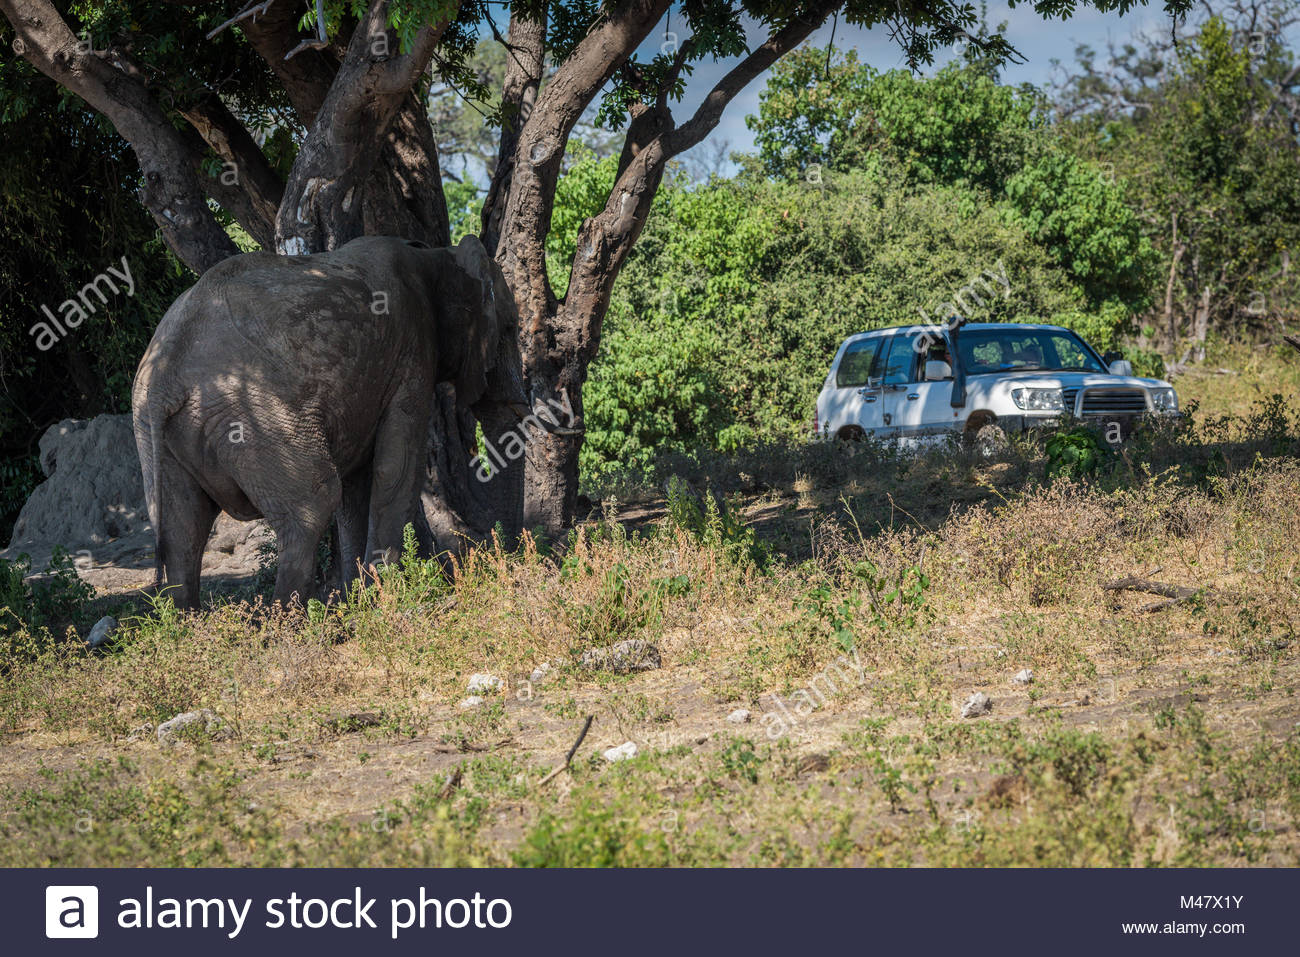 Elephant under tree watched by jeep passengers - Stock Image